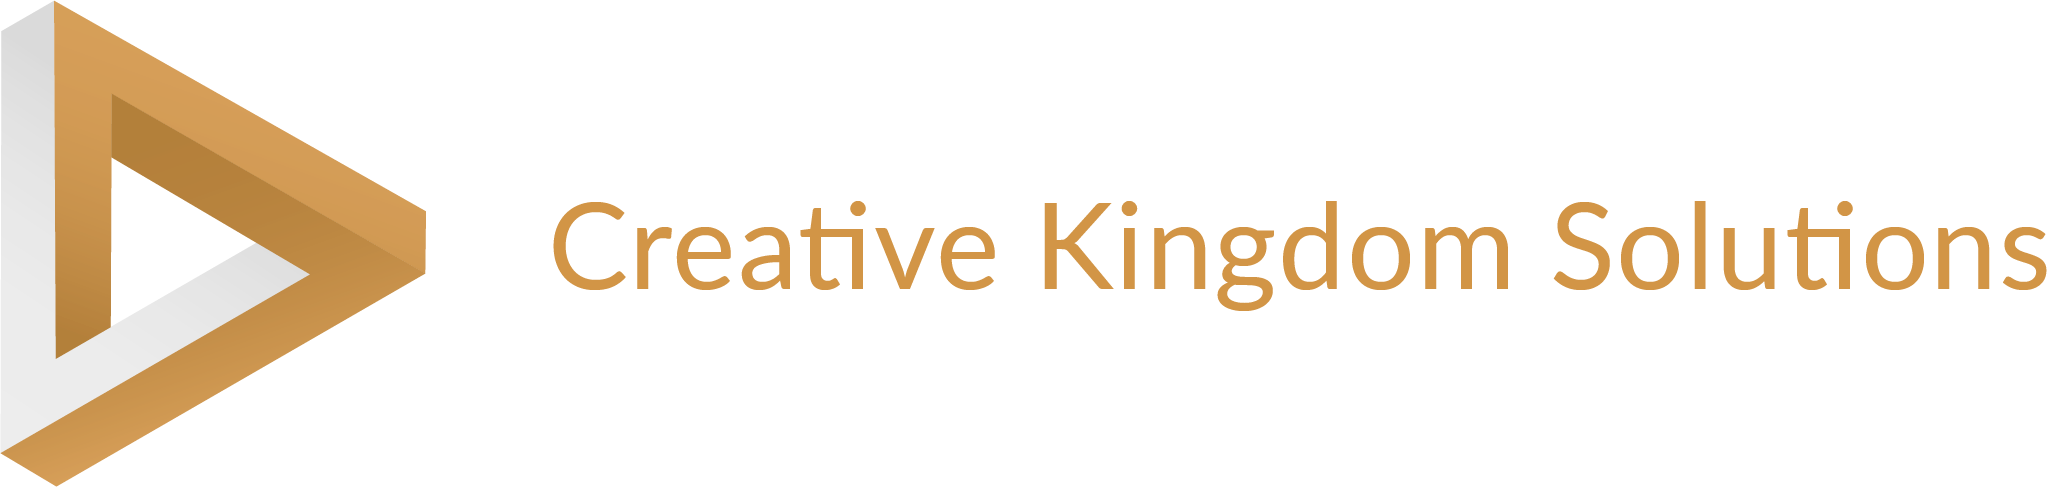 Creative Kingdom Solutions